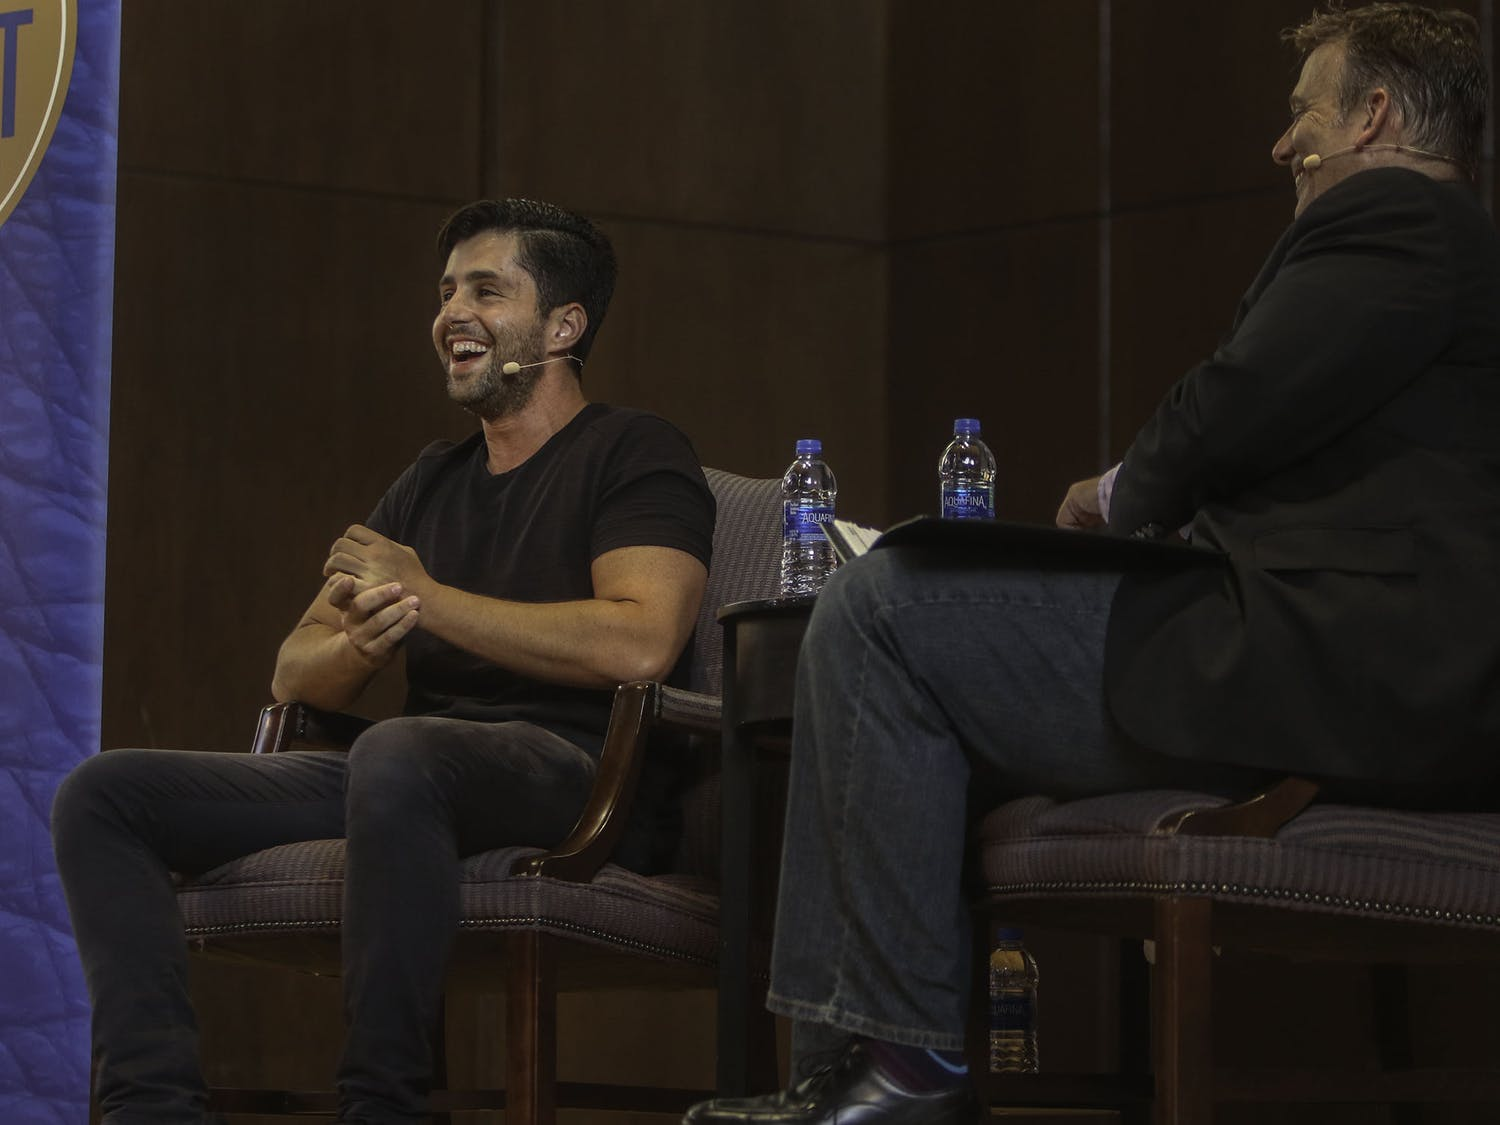 "Josh Peck, the 32-year-old social media influencer and actor known for his starring role in the Nickelodeon show ""Drake & Josh,"" speaks to Ted Spiker, the chair of the department of journalism, Wednesday evening at the University Auditorium at the University of Florida. Peck first told the sold-out crowd of over 800 people about being married and becoming a dad. ""I can't believe I found someone to procreate with,"" Peck joked."